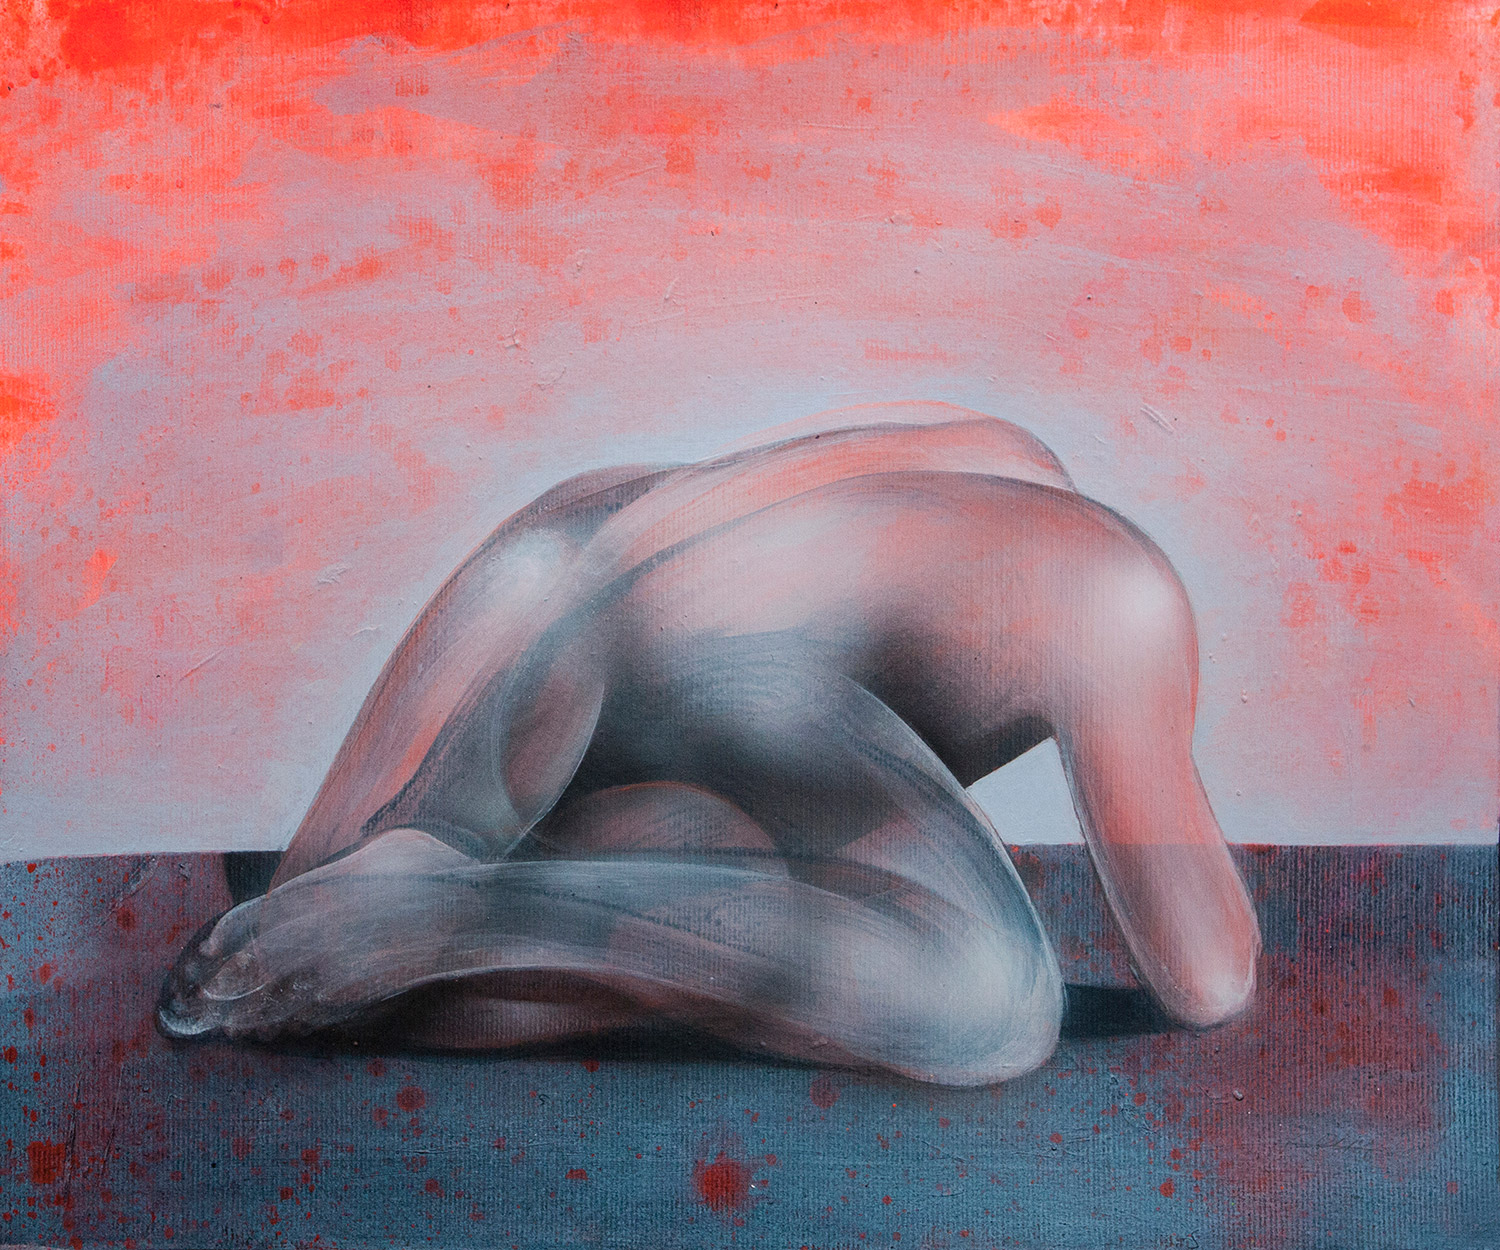 John Reuss - Untitled - red backdrop with crouching figure